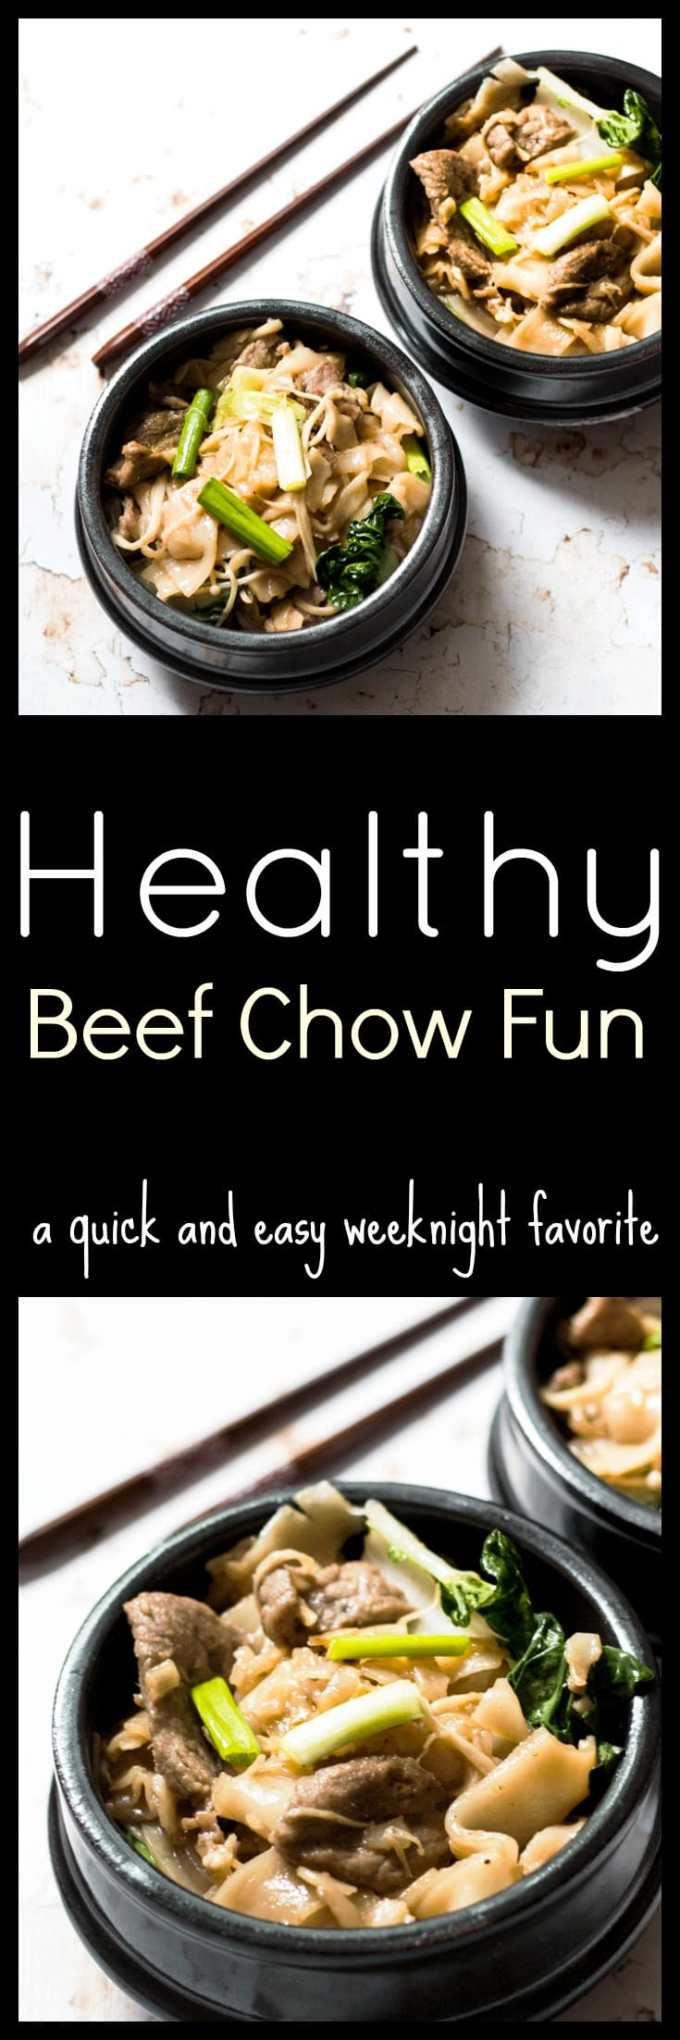 This Quick Beef Chow Fun Recipe made right in the Wok is a favorite Cantonese noodle dish which combines stir-fried flat rice noodles with crisp fresh bean sprouts and slices of beef with sweet and salty seasoning. The noodles are fried quickly in a very hot wok over high heat, giving the dish that wok hei (breath of the wok) essence.